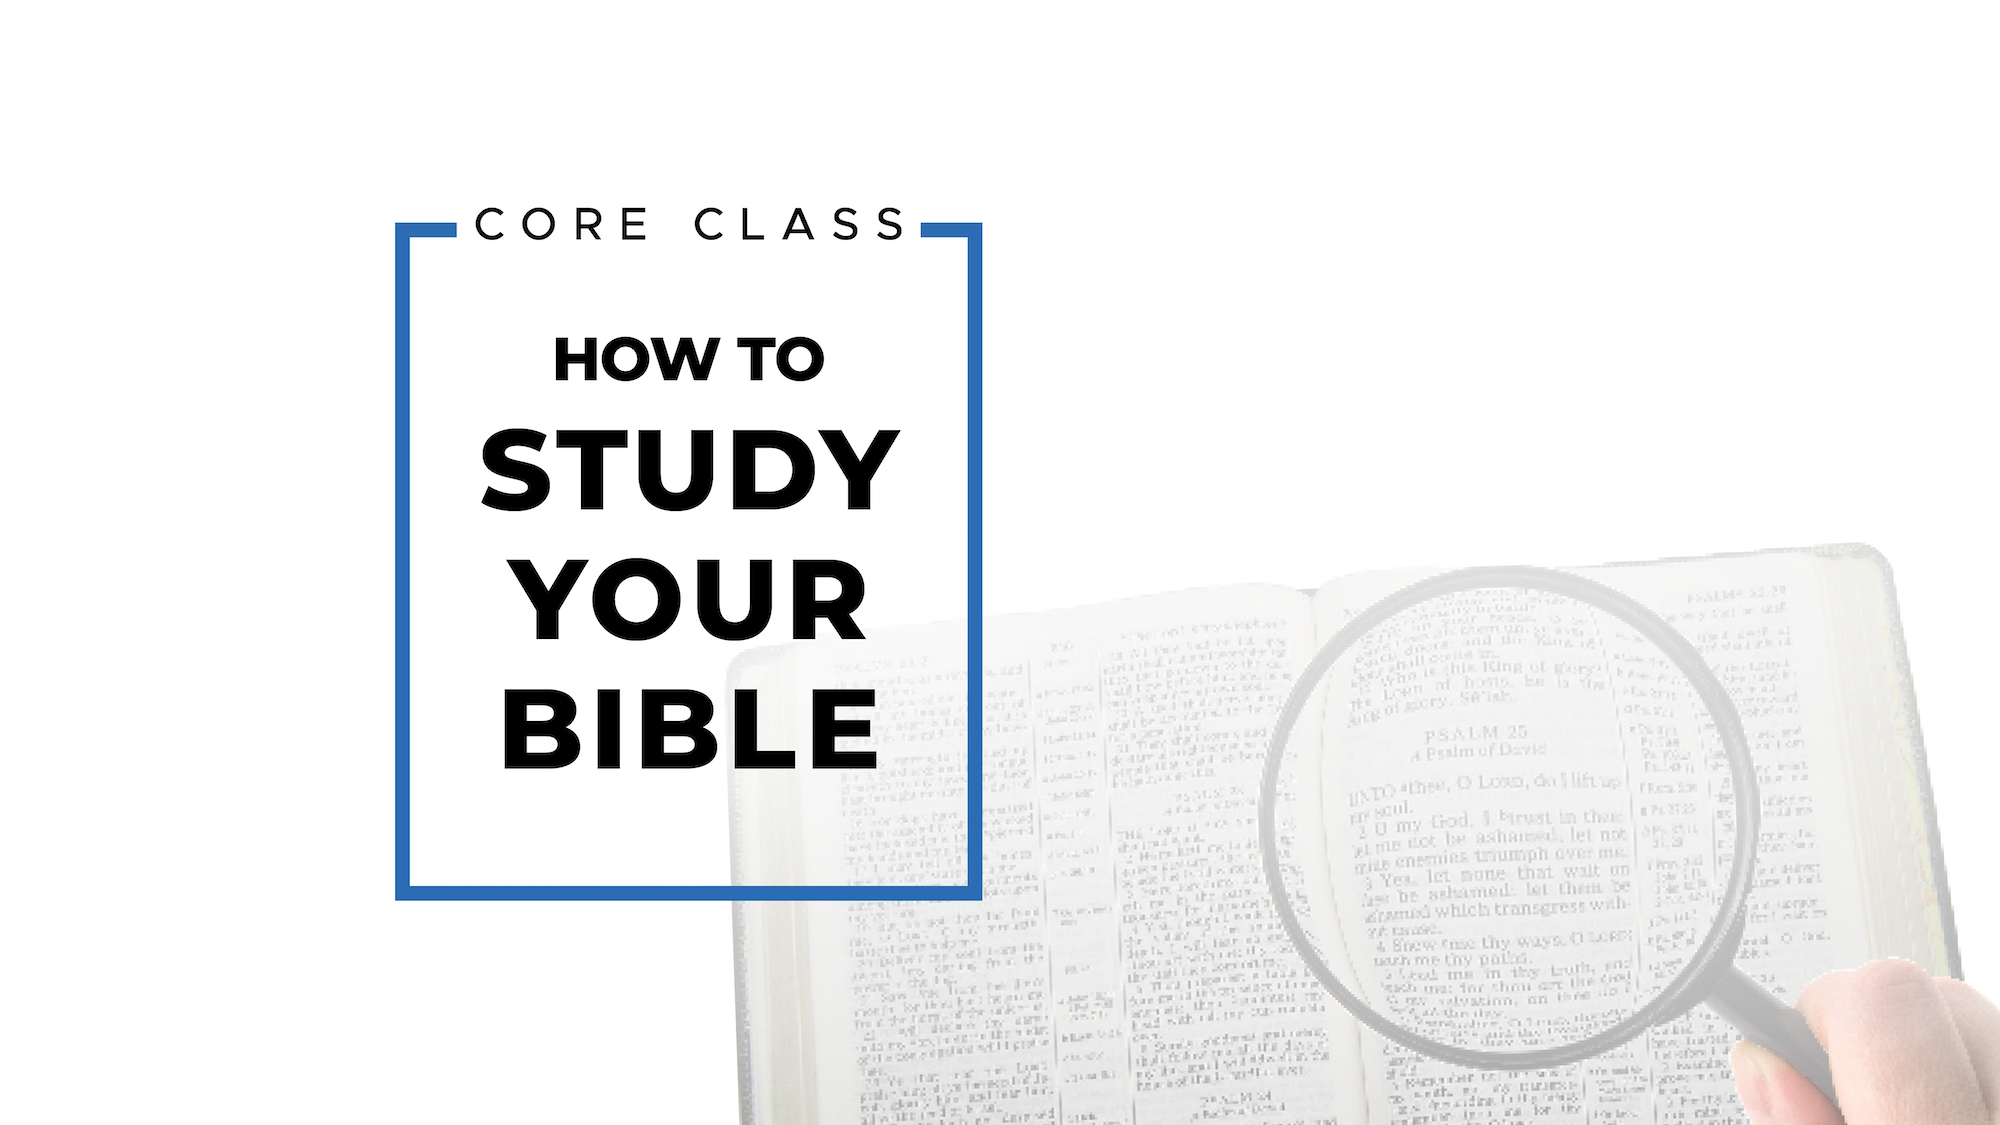 How to Study Your Bible Image